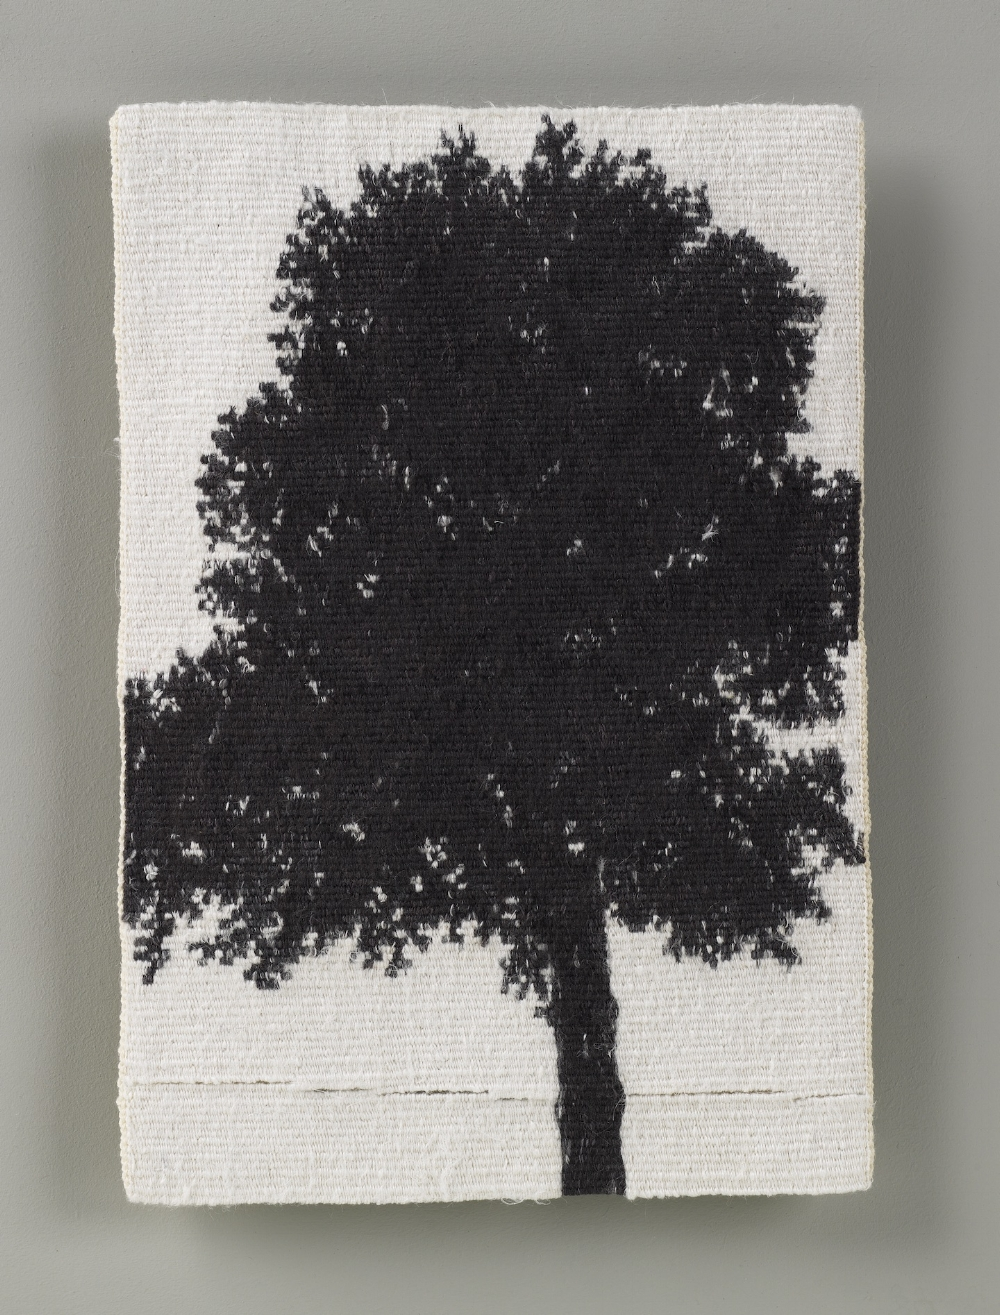 Sara Brennan, Park Tree II 2016, Tapestry: cotton, wool, silk, 21 x 15 cms